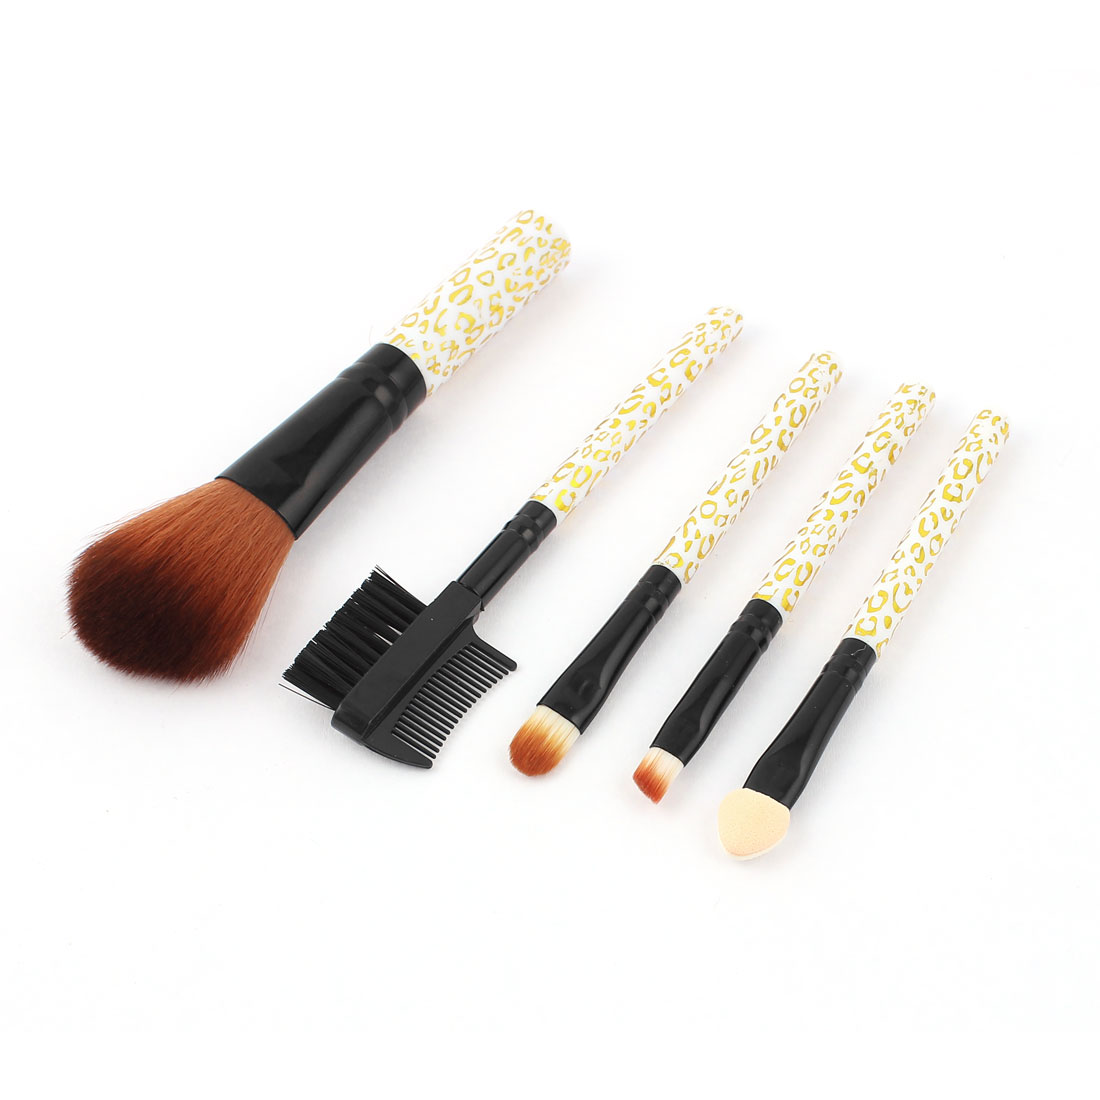 5 in 1 Makeup Cosmetic Blush Brush Eyeshadow Applicator Lip Eyebrow Powder Brushes Set for Lady